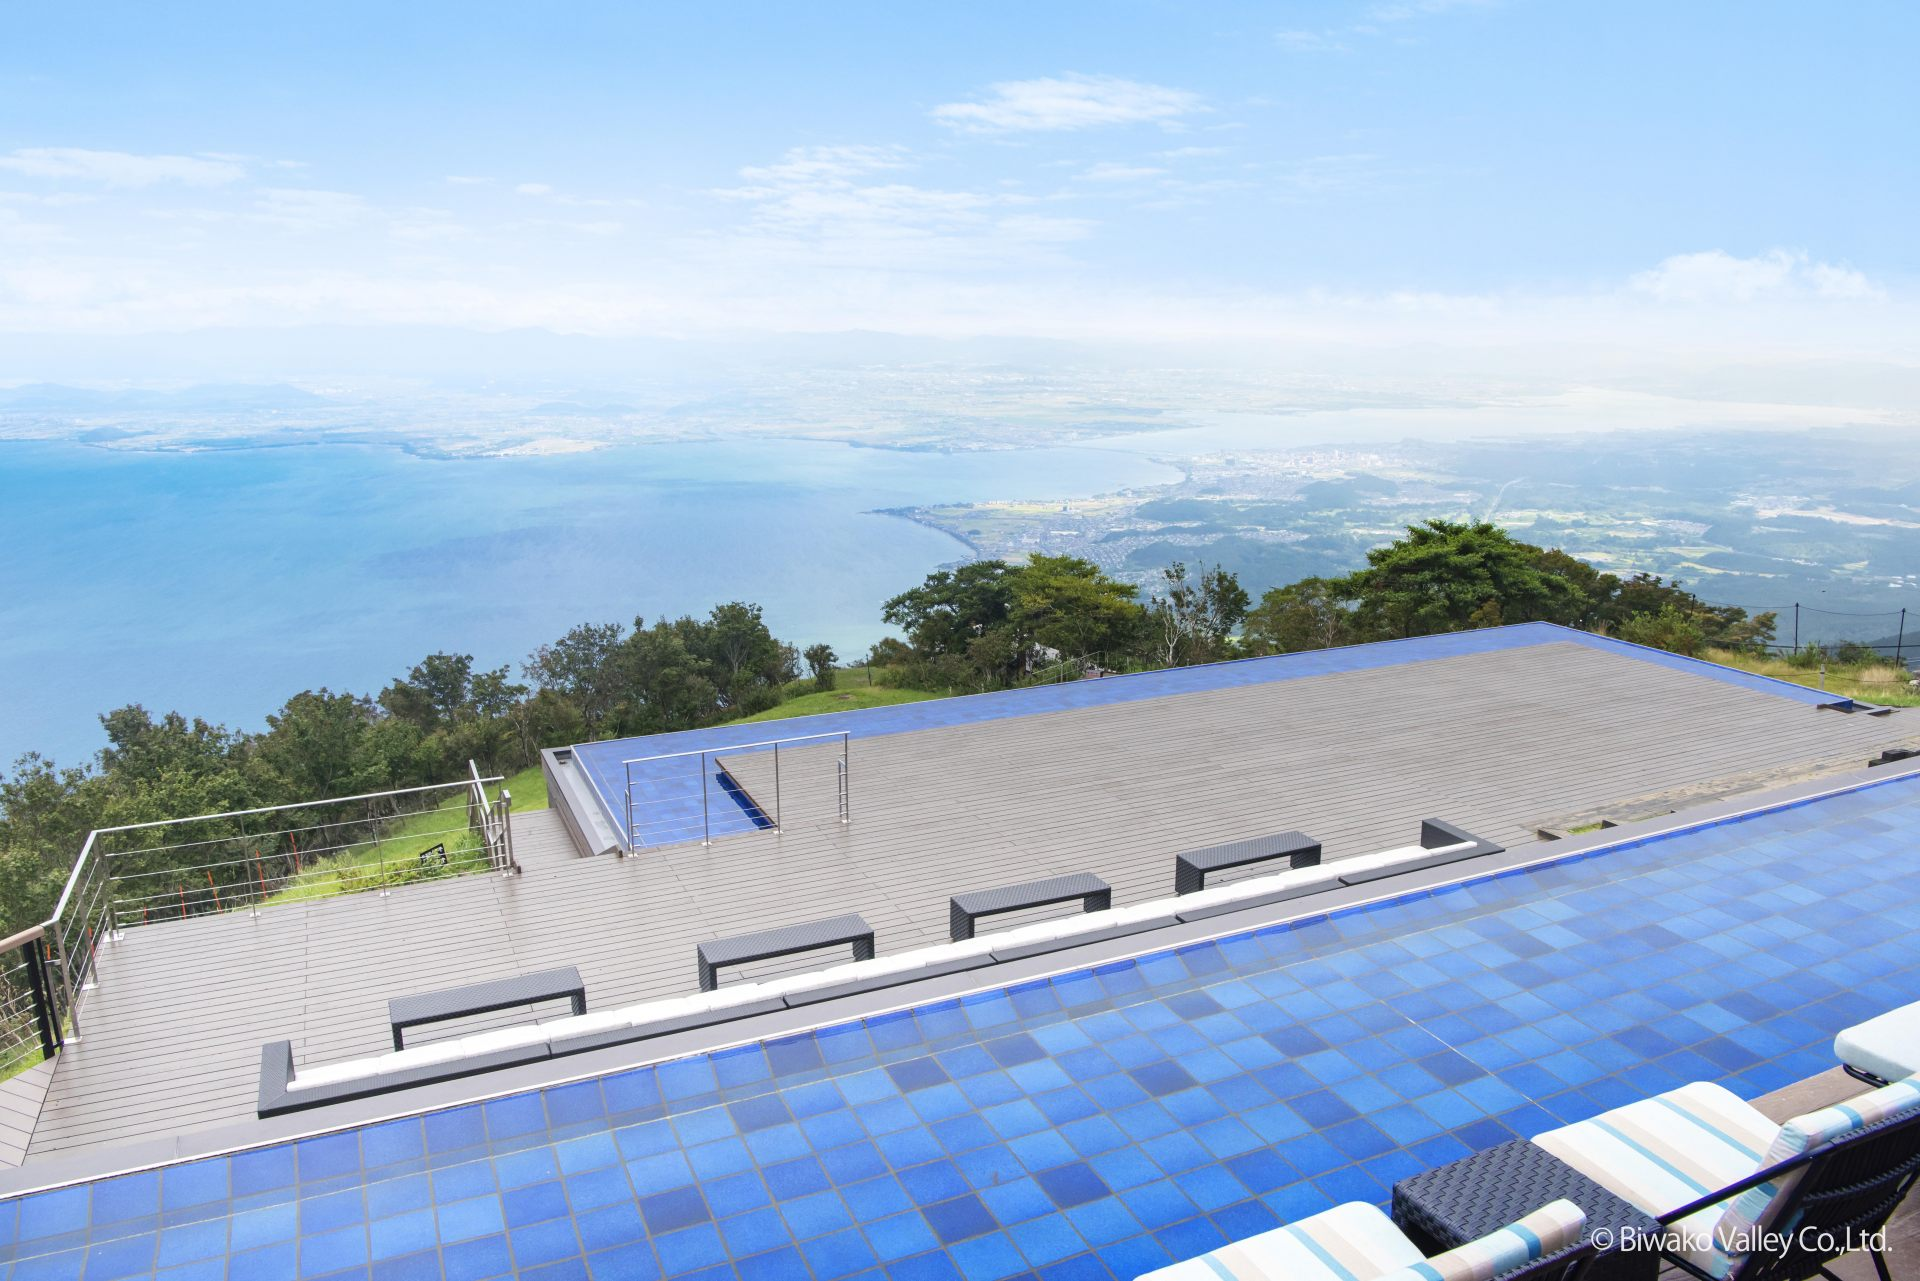 The Grand Terrace is an area that is symbolic of the Biwako Terrace.